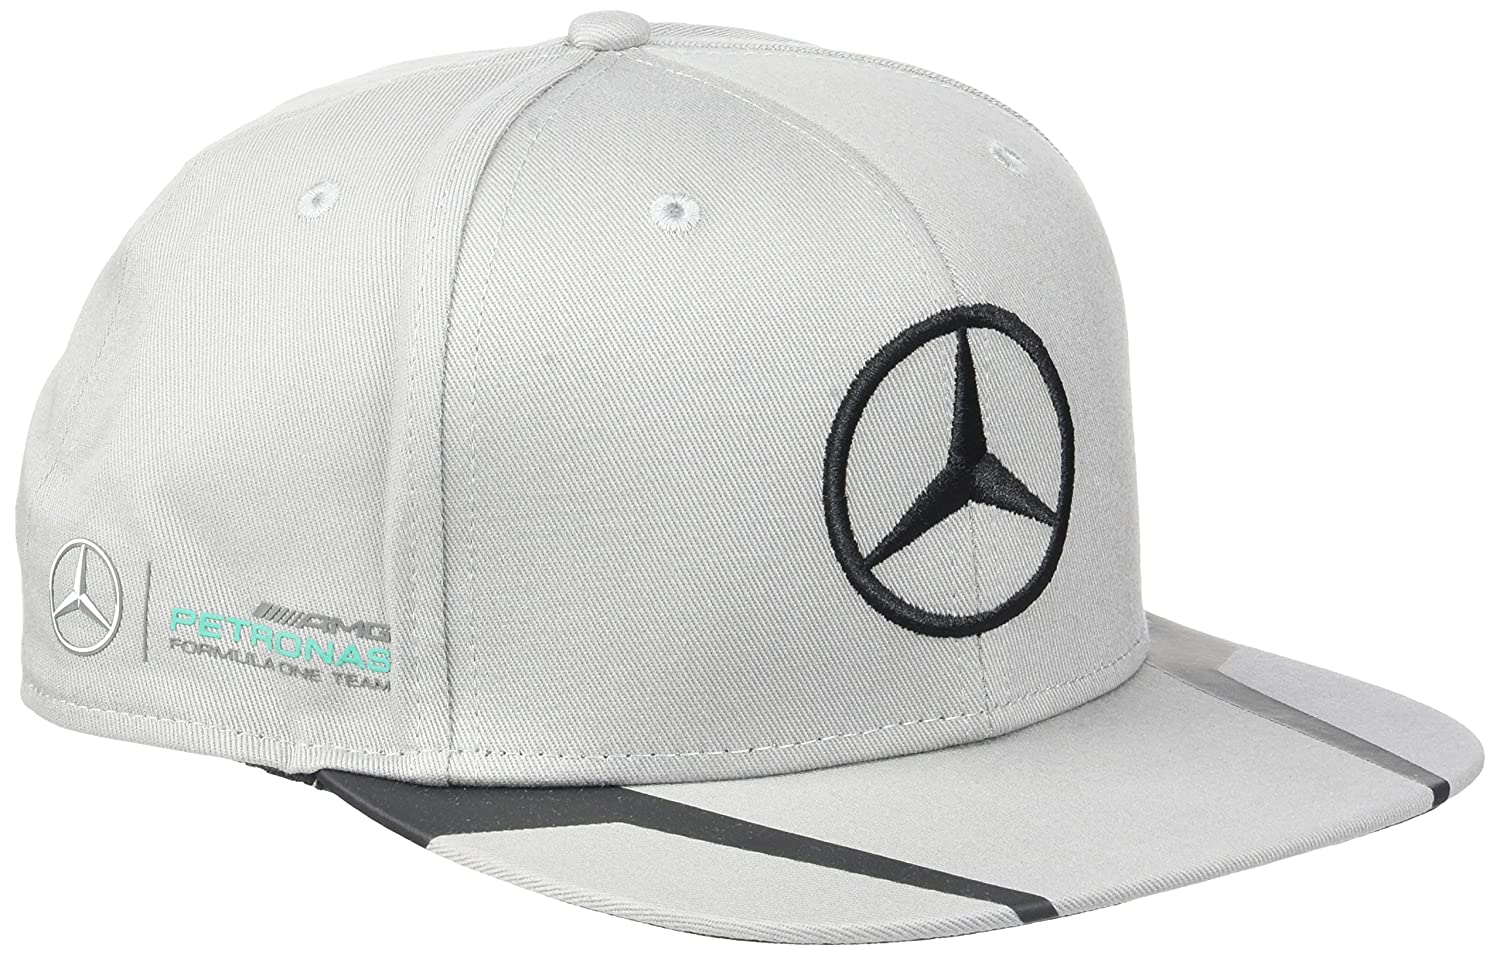 mercedes amg hamilton flat casquette formule 1 f1 141161004 ebay. Black Bedroom Furniture Sets. Home Design Ideas